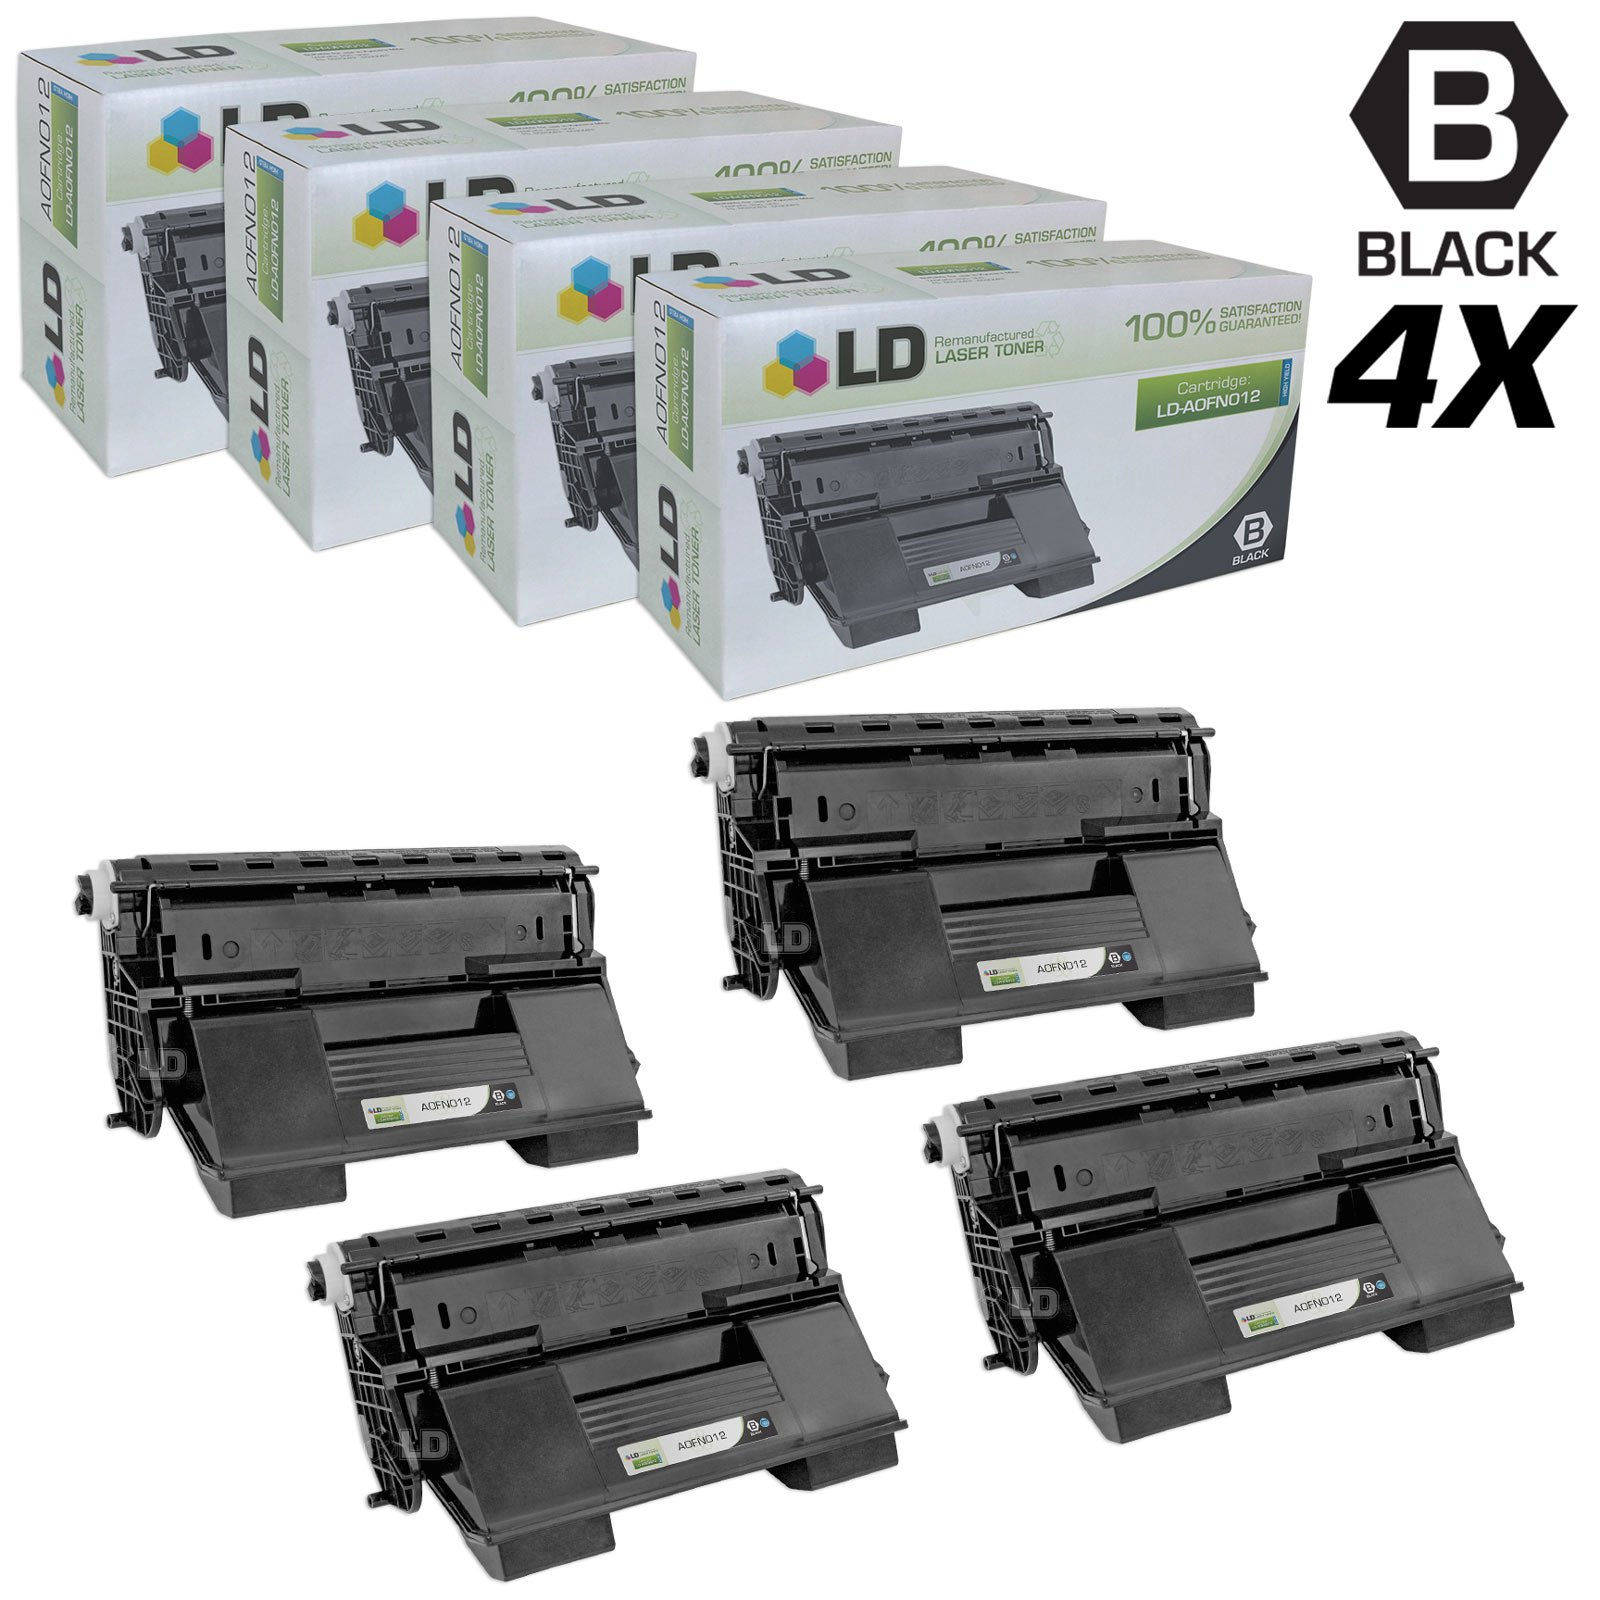 LD Remanufactured Toner Cartridge Replacement for Konica Minolta PagePro 4650EN A0FN012 High Yield (Black, 4-Pack)